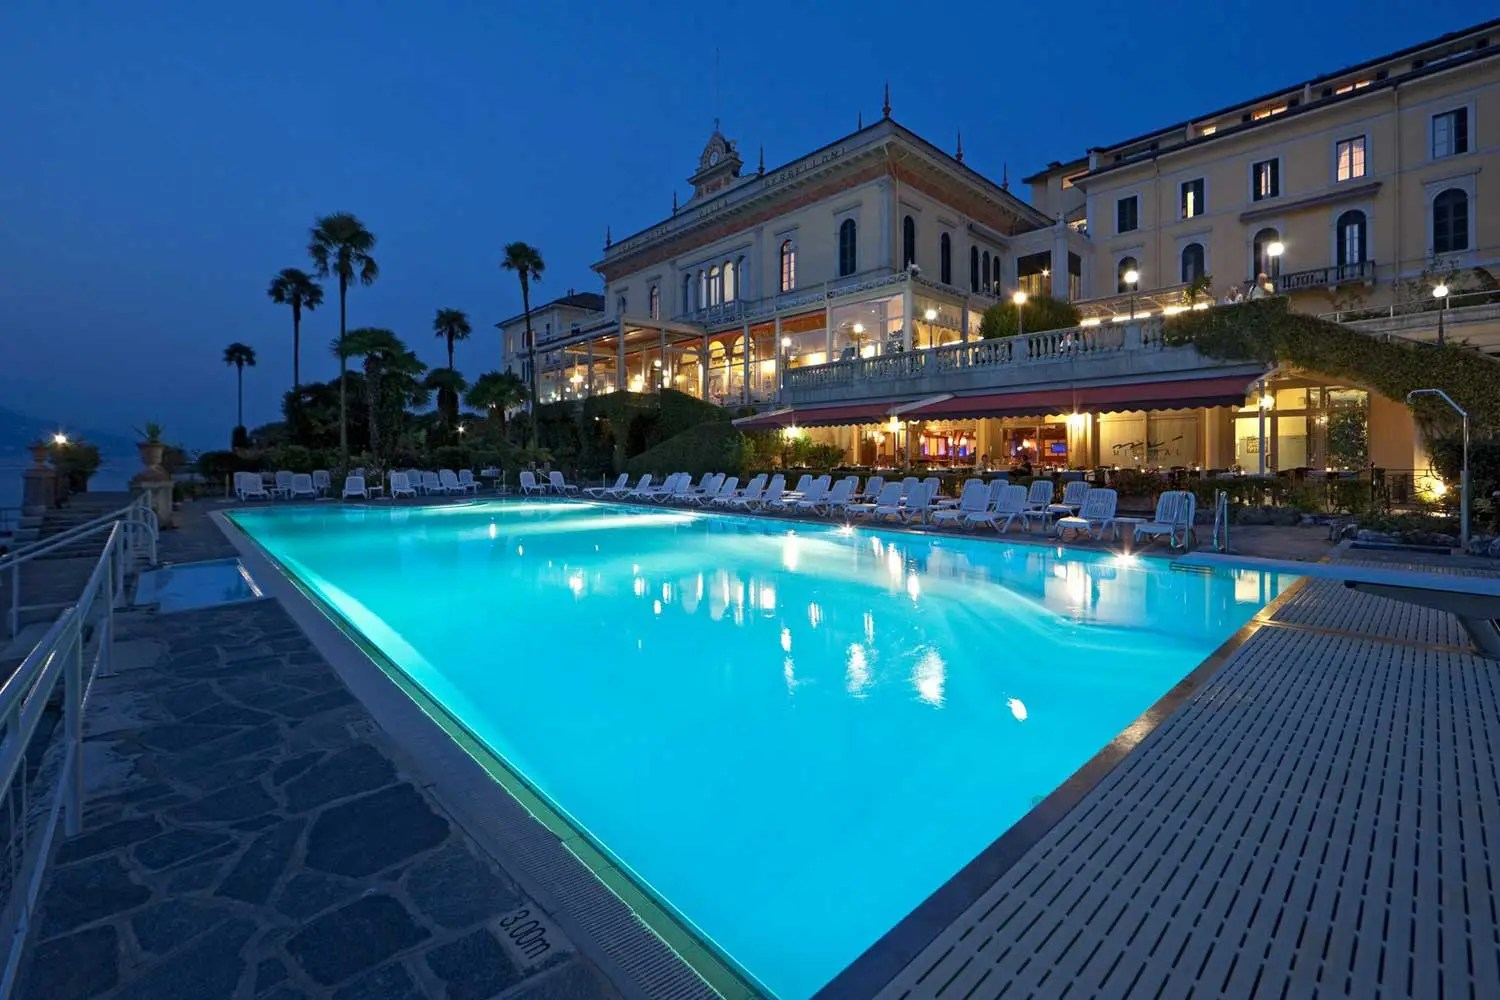 Italie hotel s lection des plus beaux h tels en italie for Hotel design italie